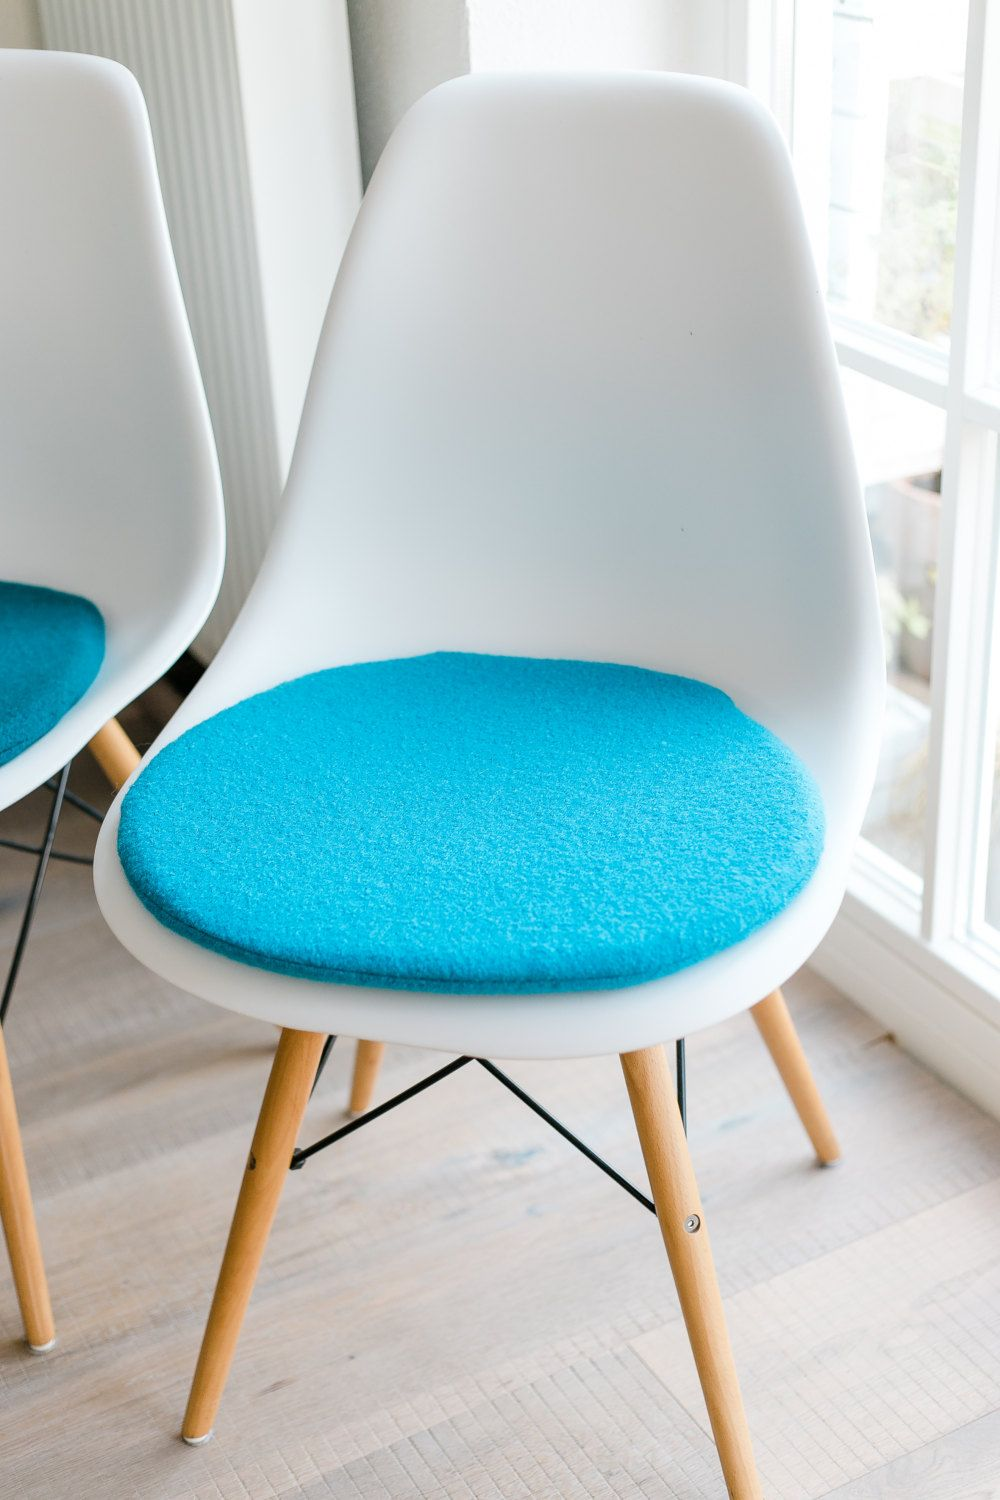 seat cushion for eames chair in aqua n hen pinterest sitzkissen kissen und st hle. Black Bedroom Furniture Sets. Home Design Ideas